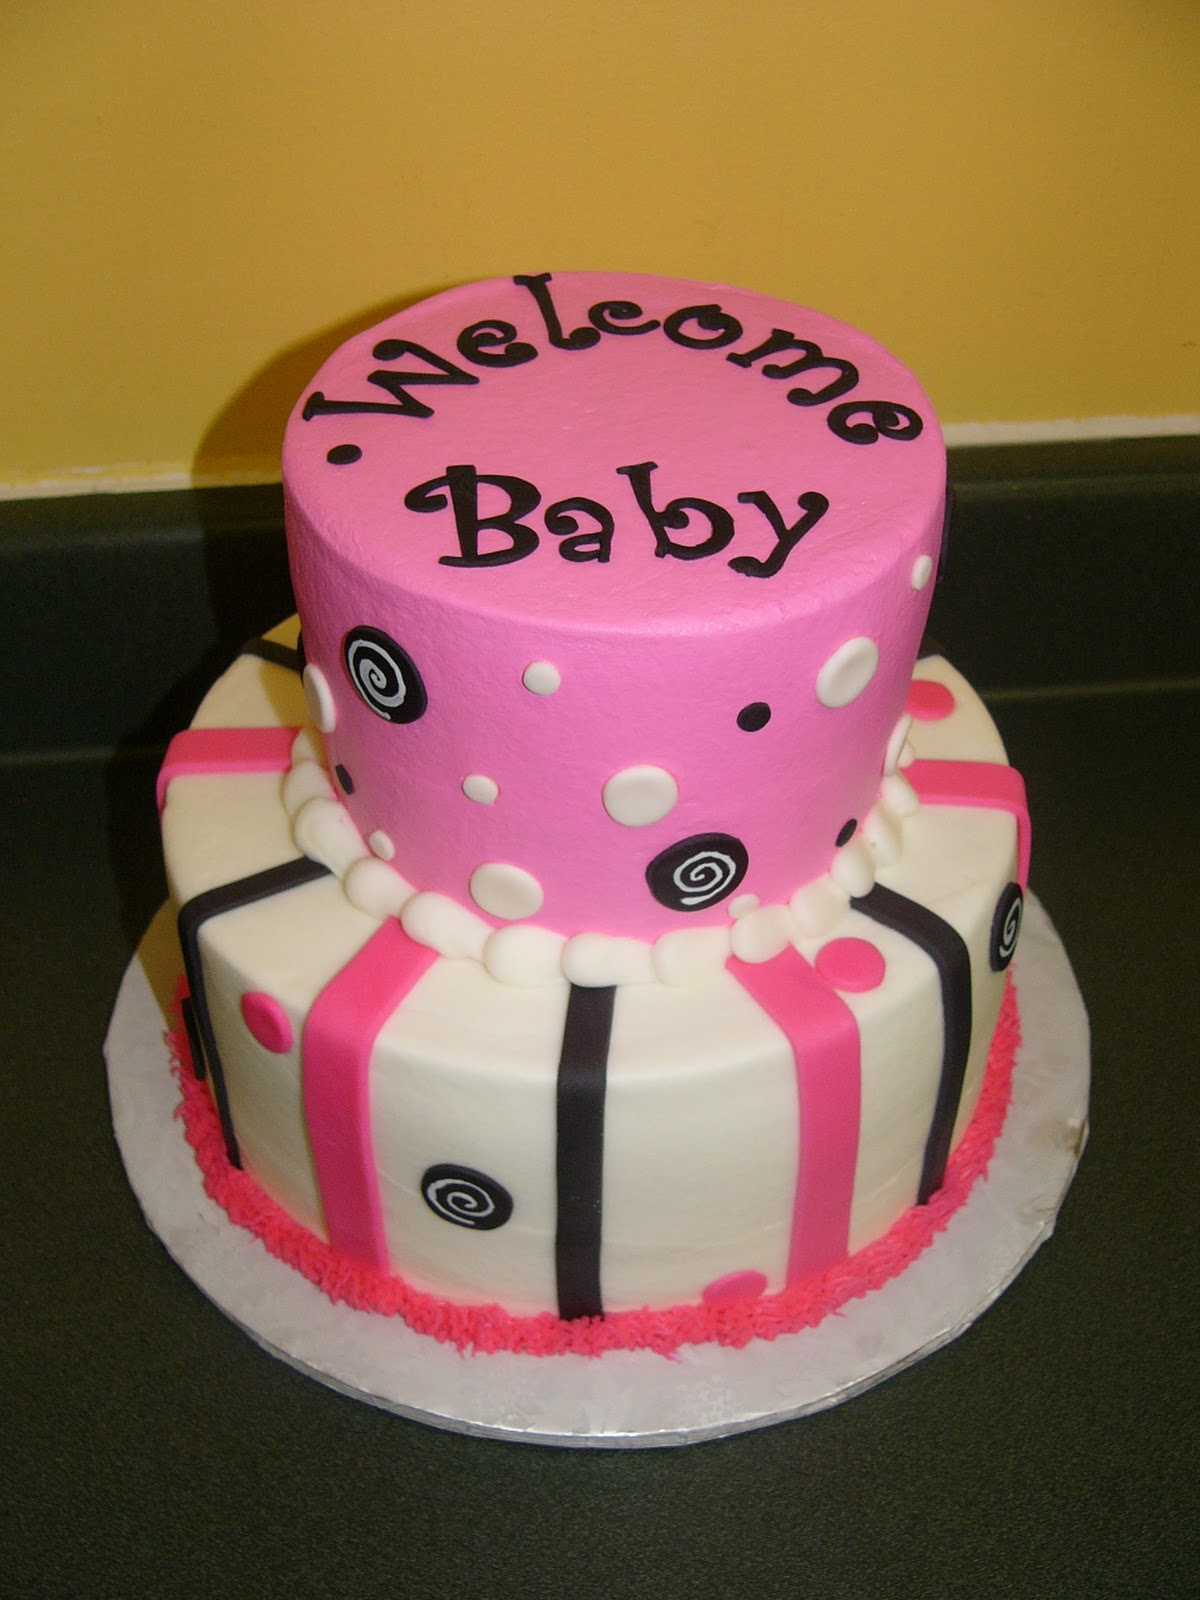 Welcome Baby! Indianapolis Fisher Carmel Baby Shower Cakes